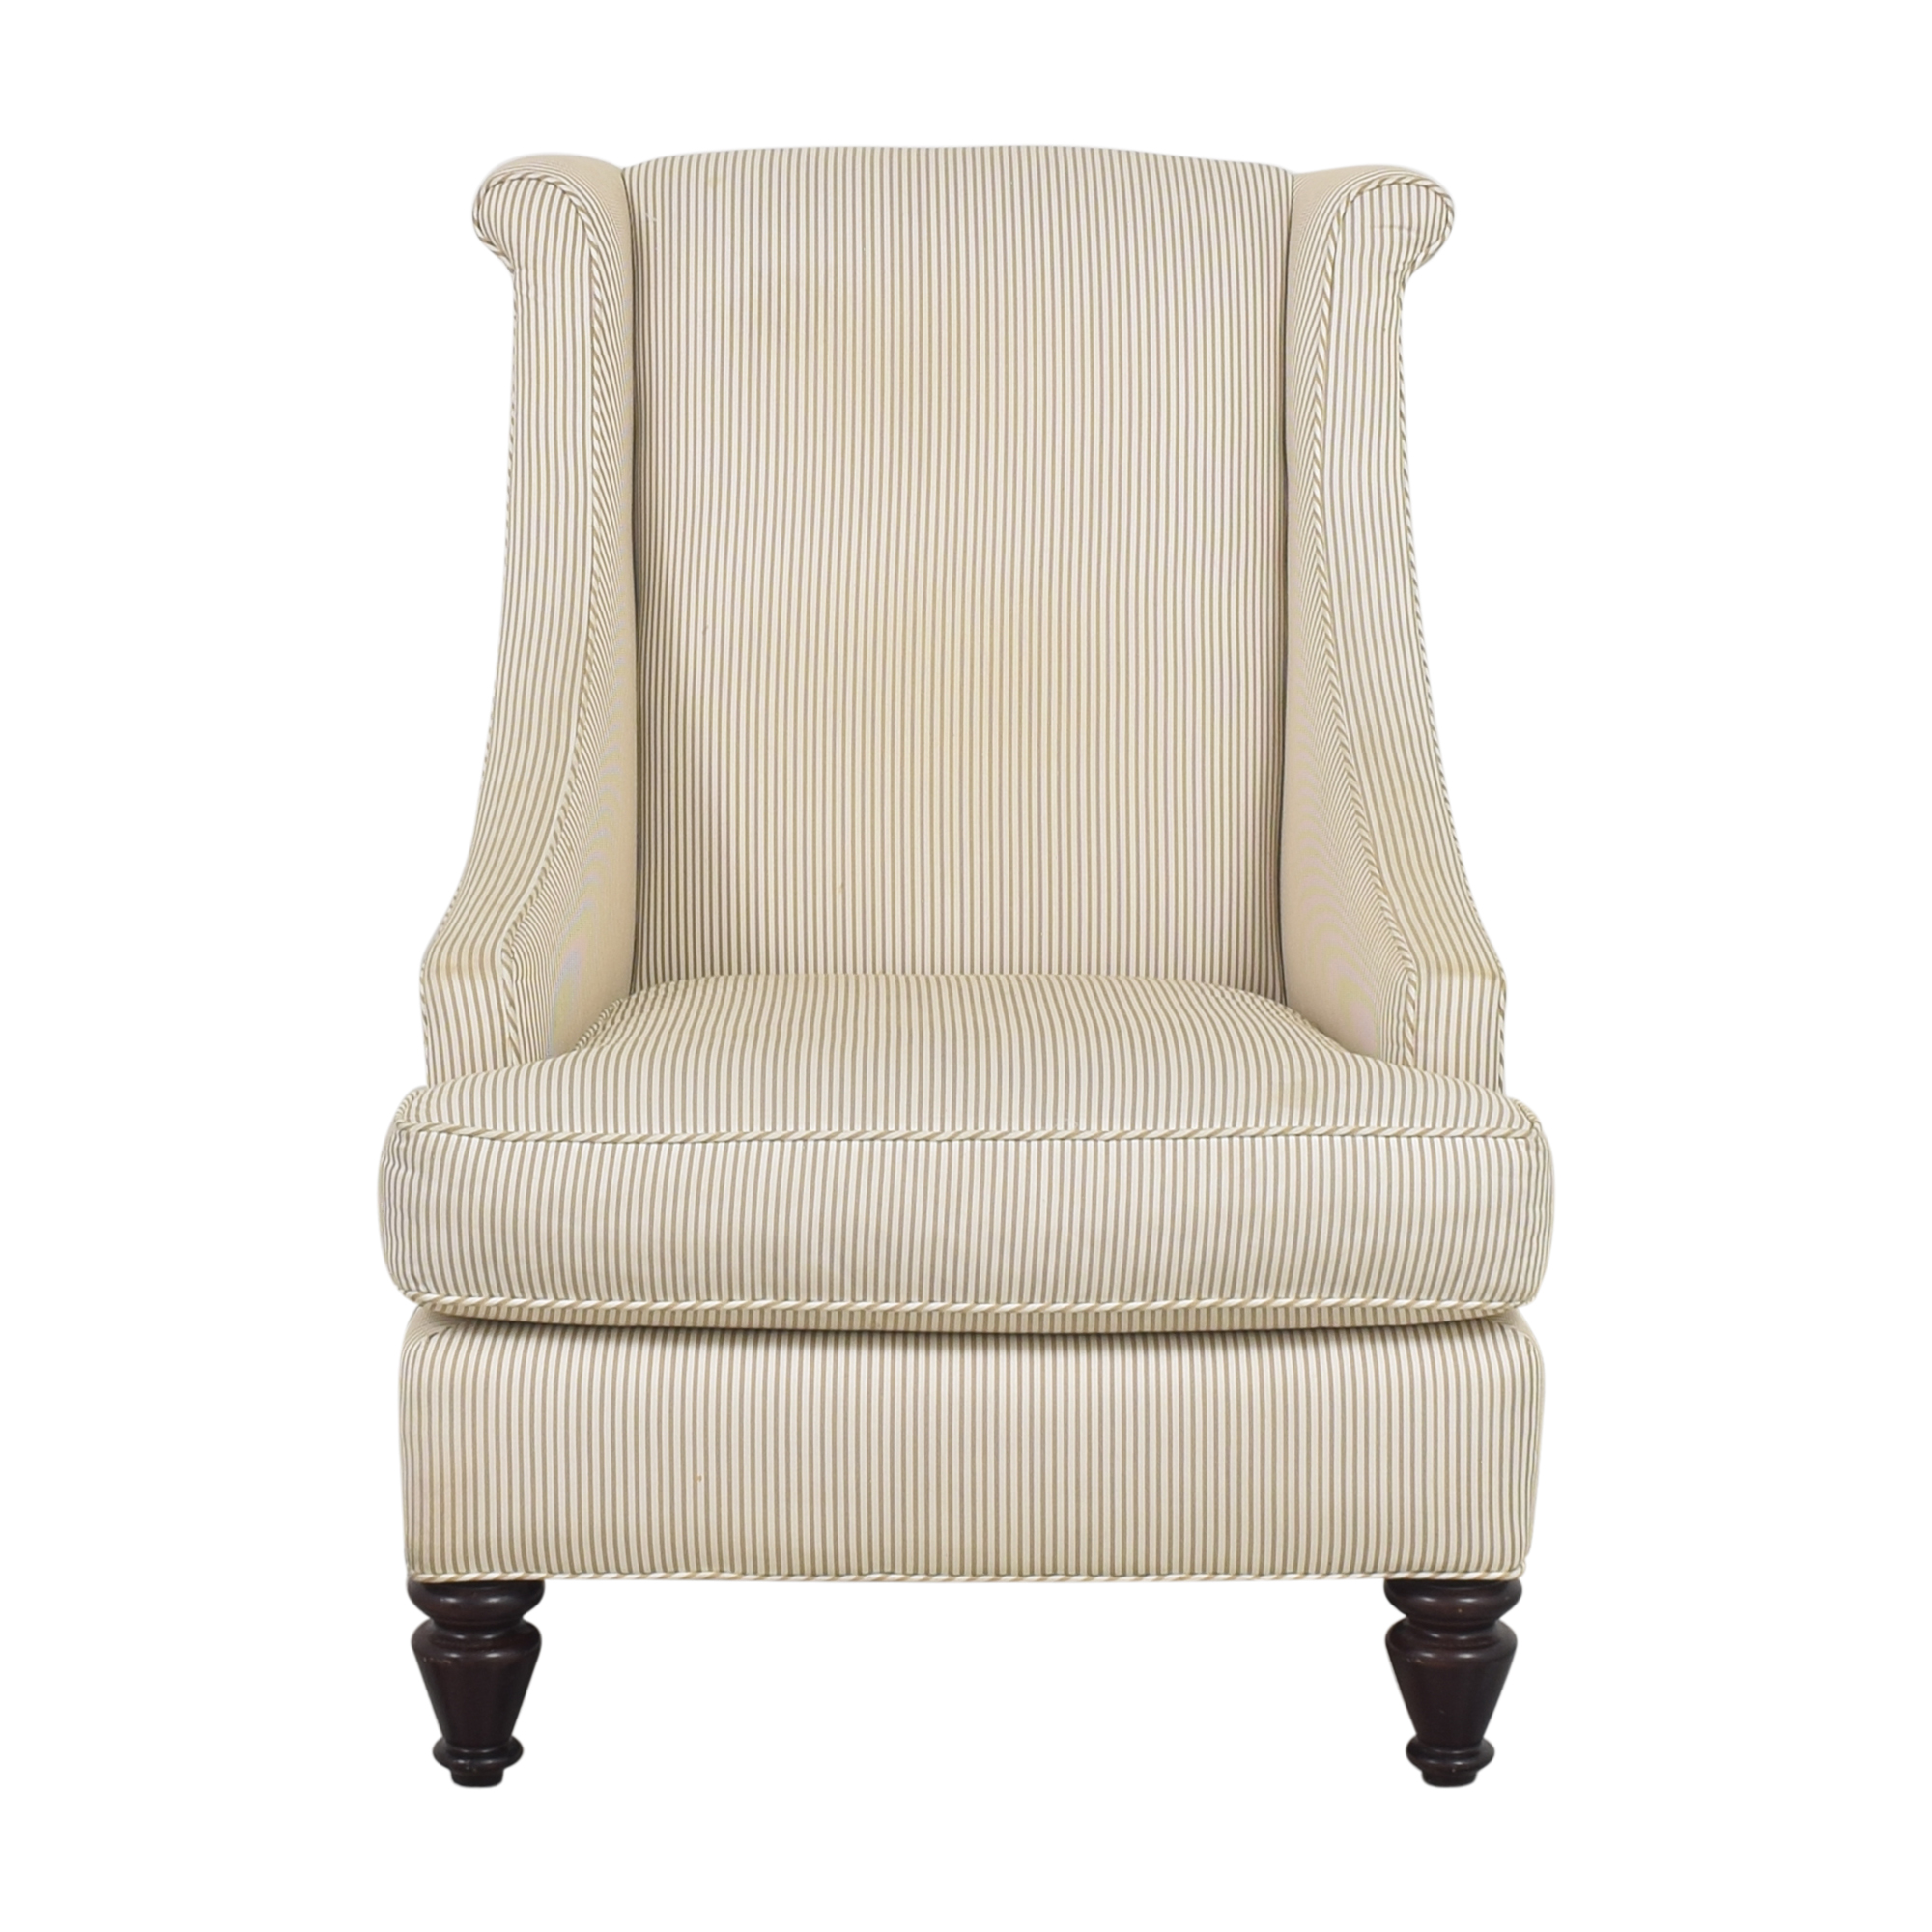 Mitchell Gold + Bob Williams Mitchell Gold + Bob Williams Stripe Accent Chair dimensions